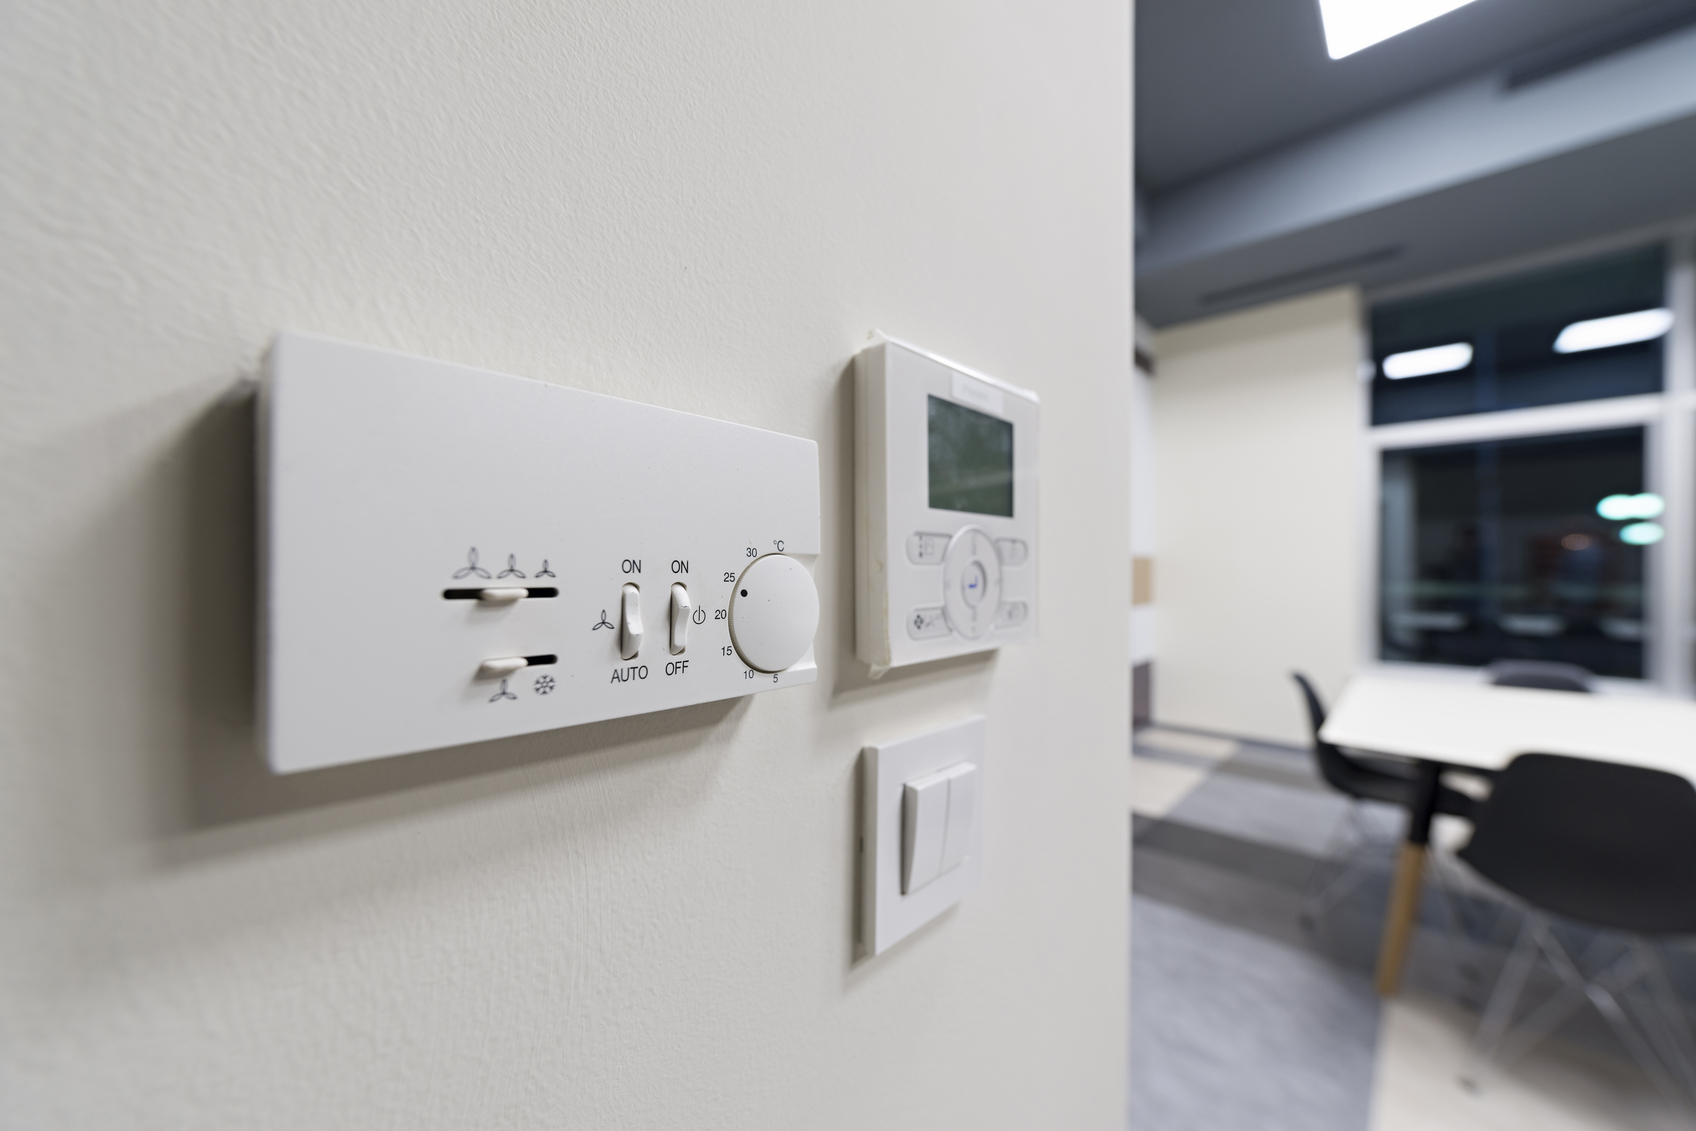 Climate Control System Installed On Office Wall